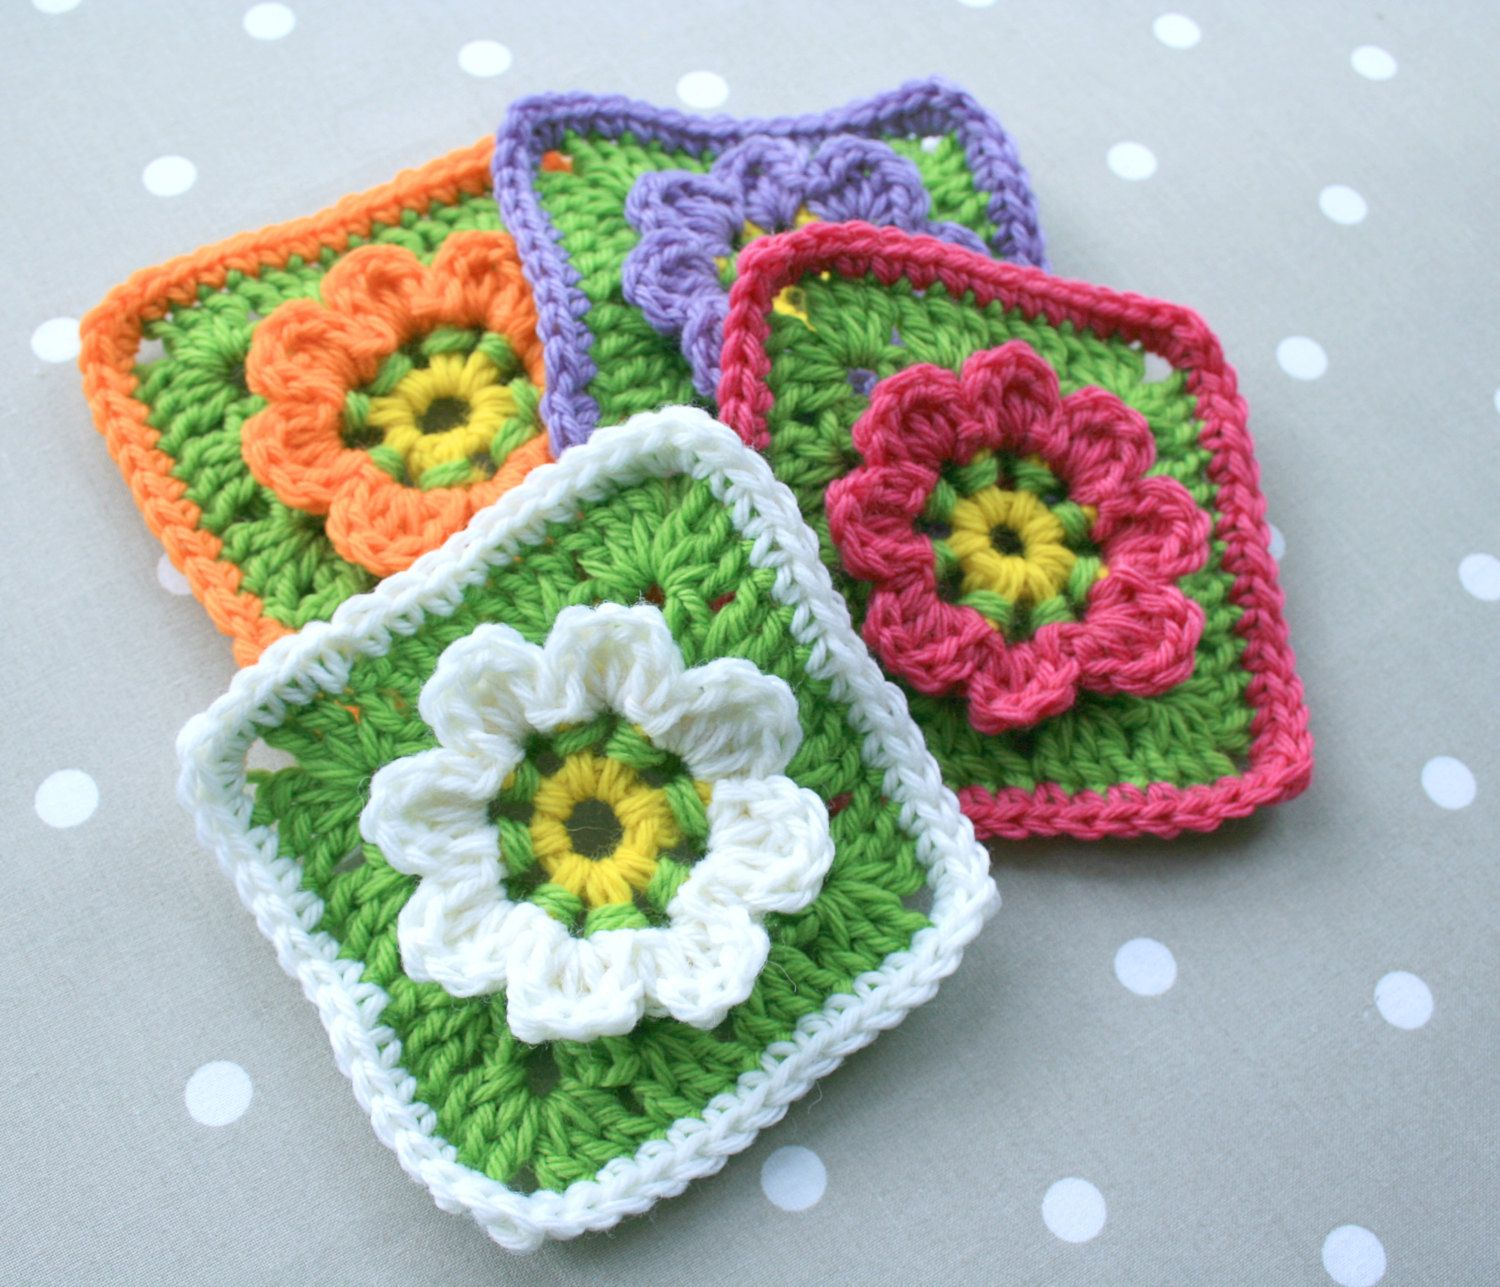 Crochet pattern floral granny square pdf manualidades crochet pattern floral granny square pdf bankloansurffo Image collections